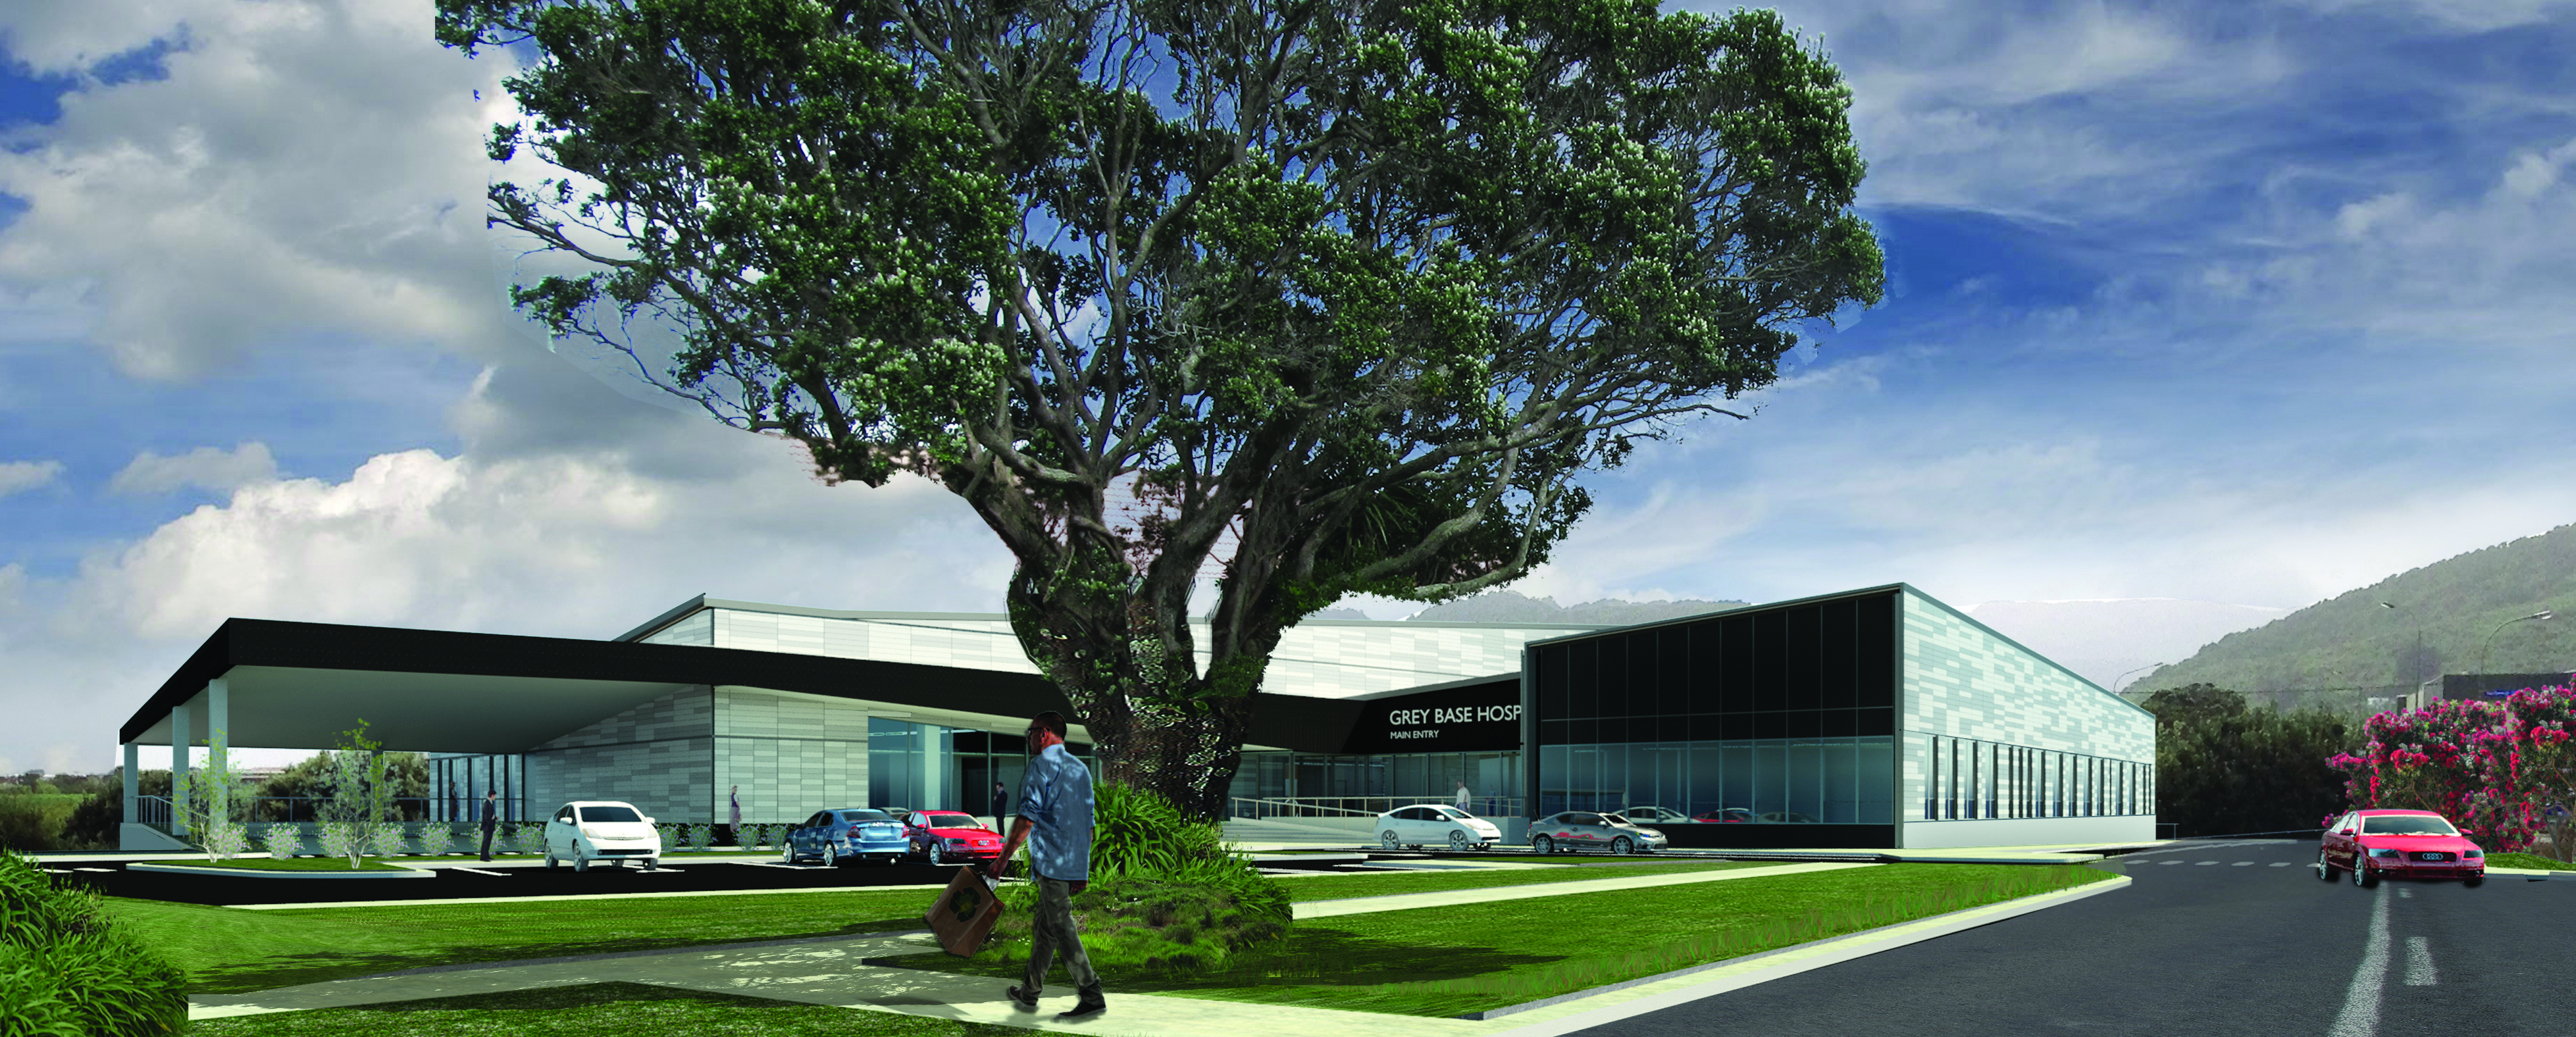 Over Budget And Overdue Greymouth Hospital Scheduled To